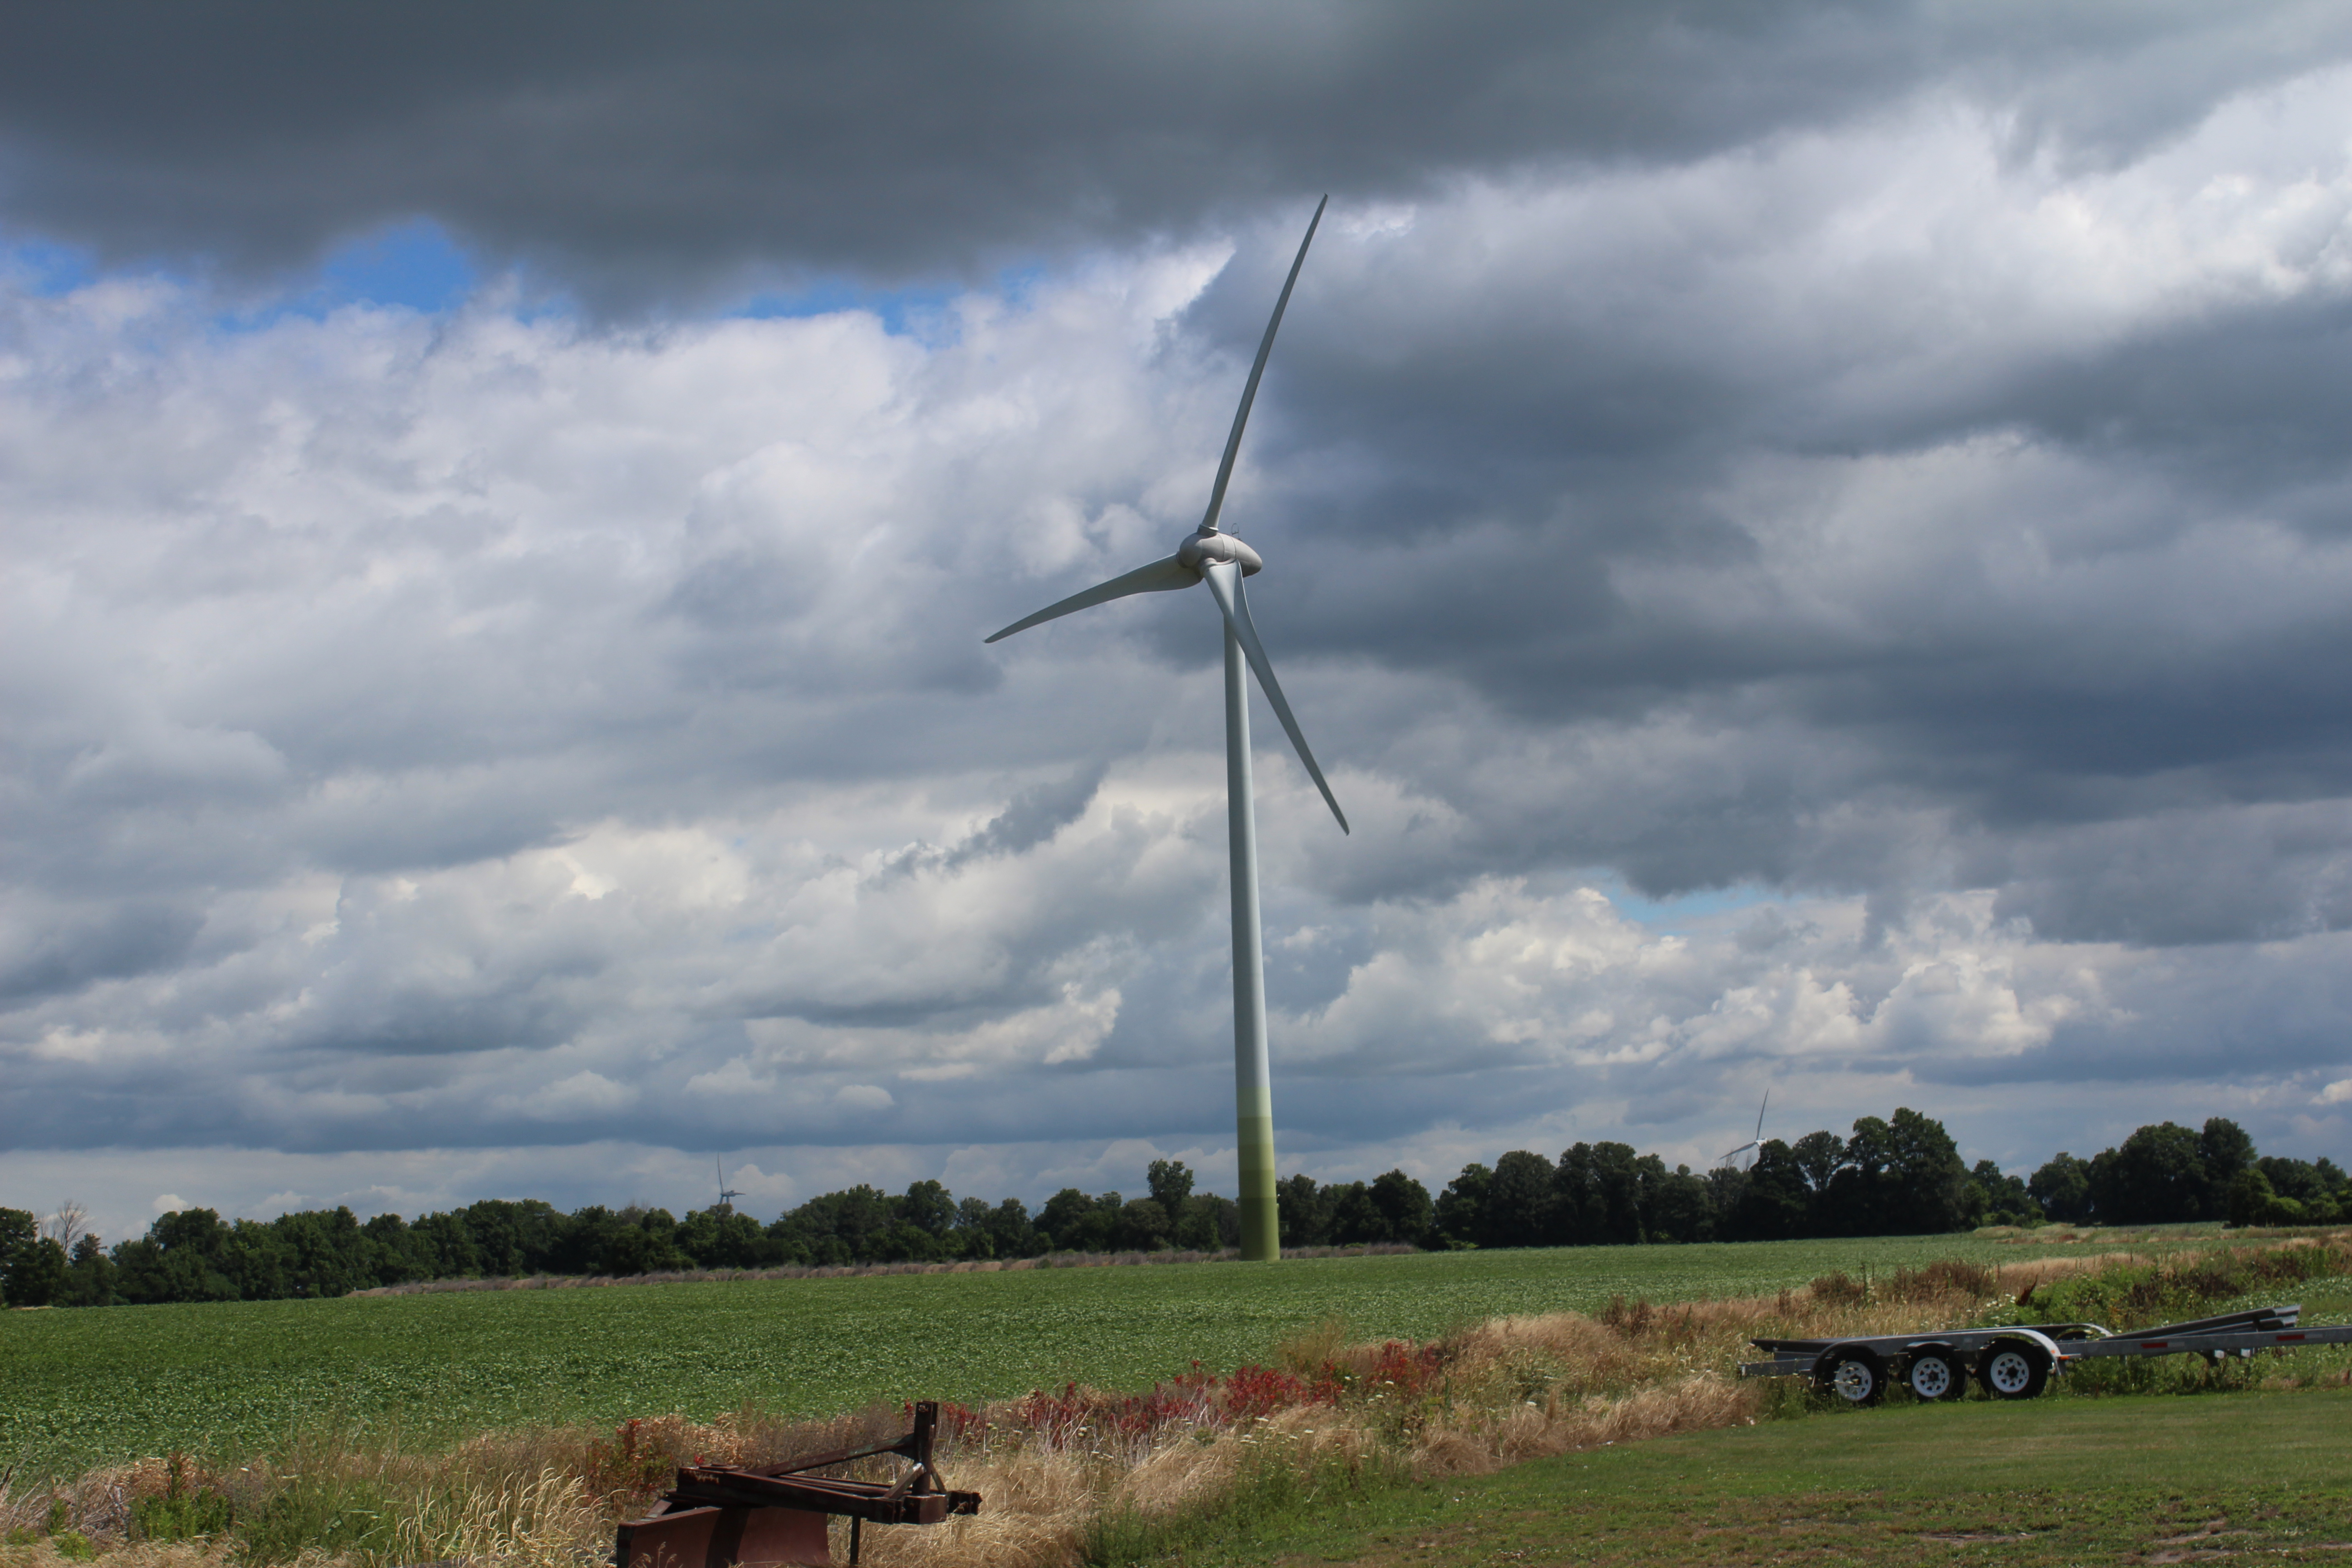 MPP Seeks Suspension Of Local Wind Projects